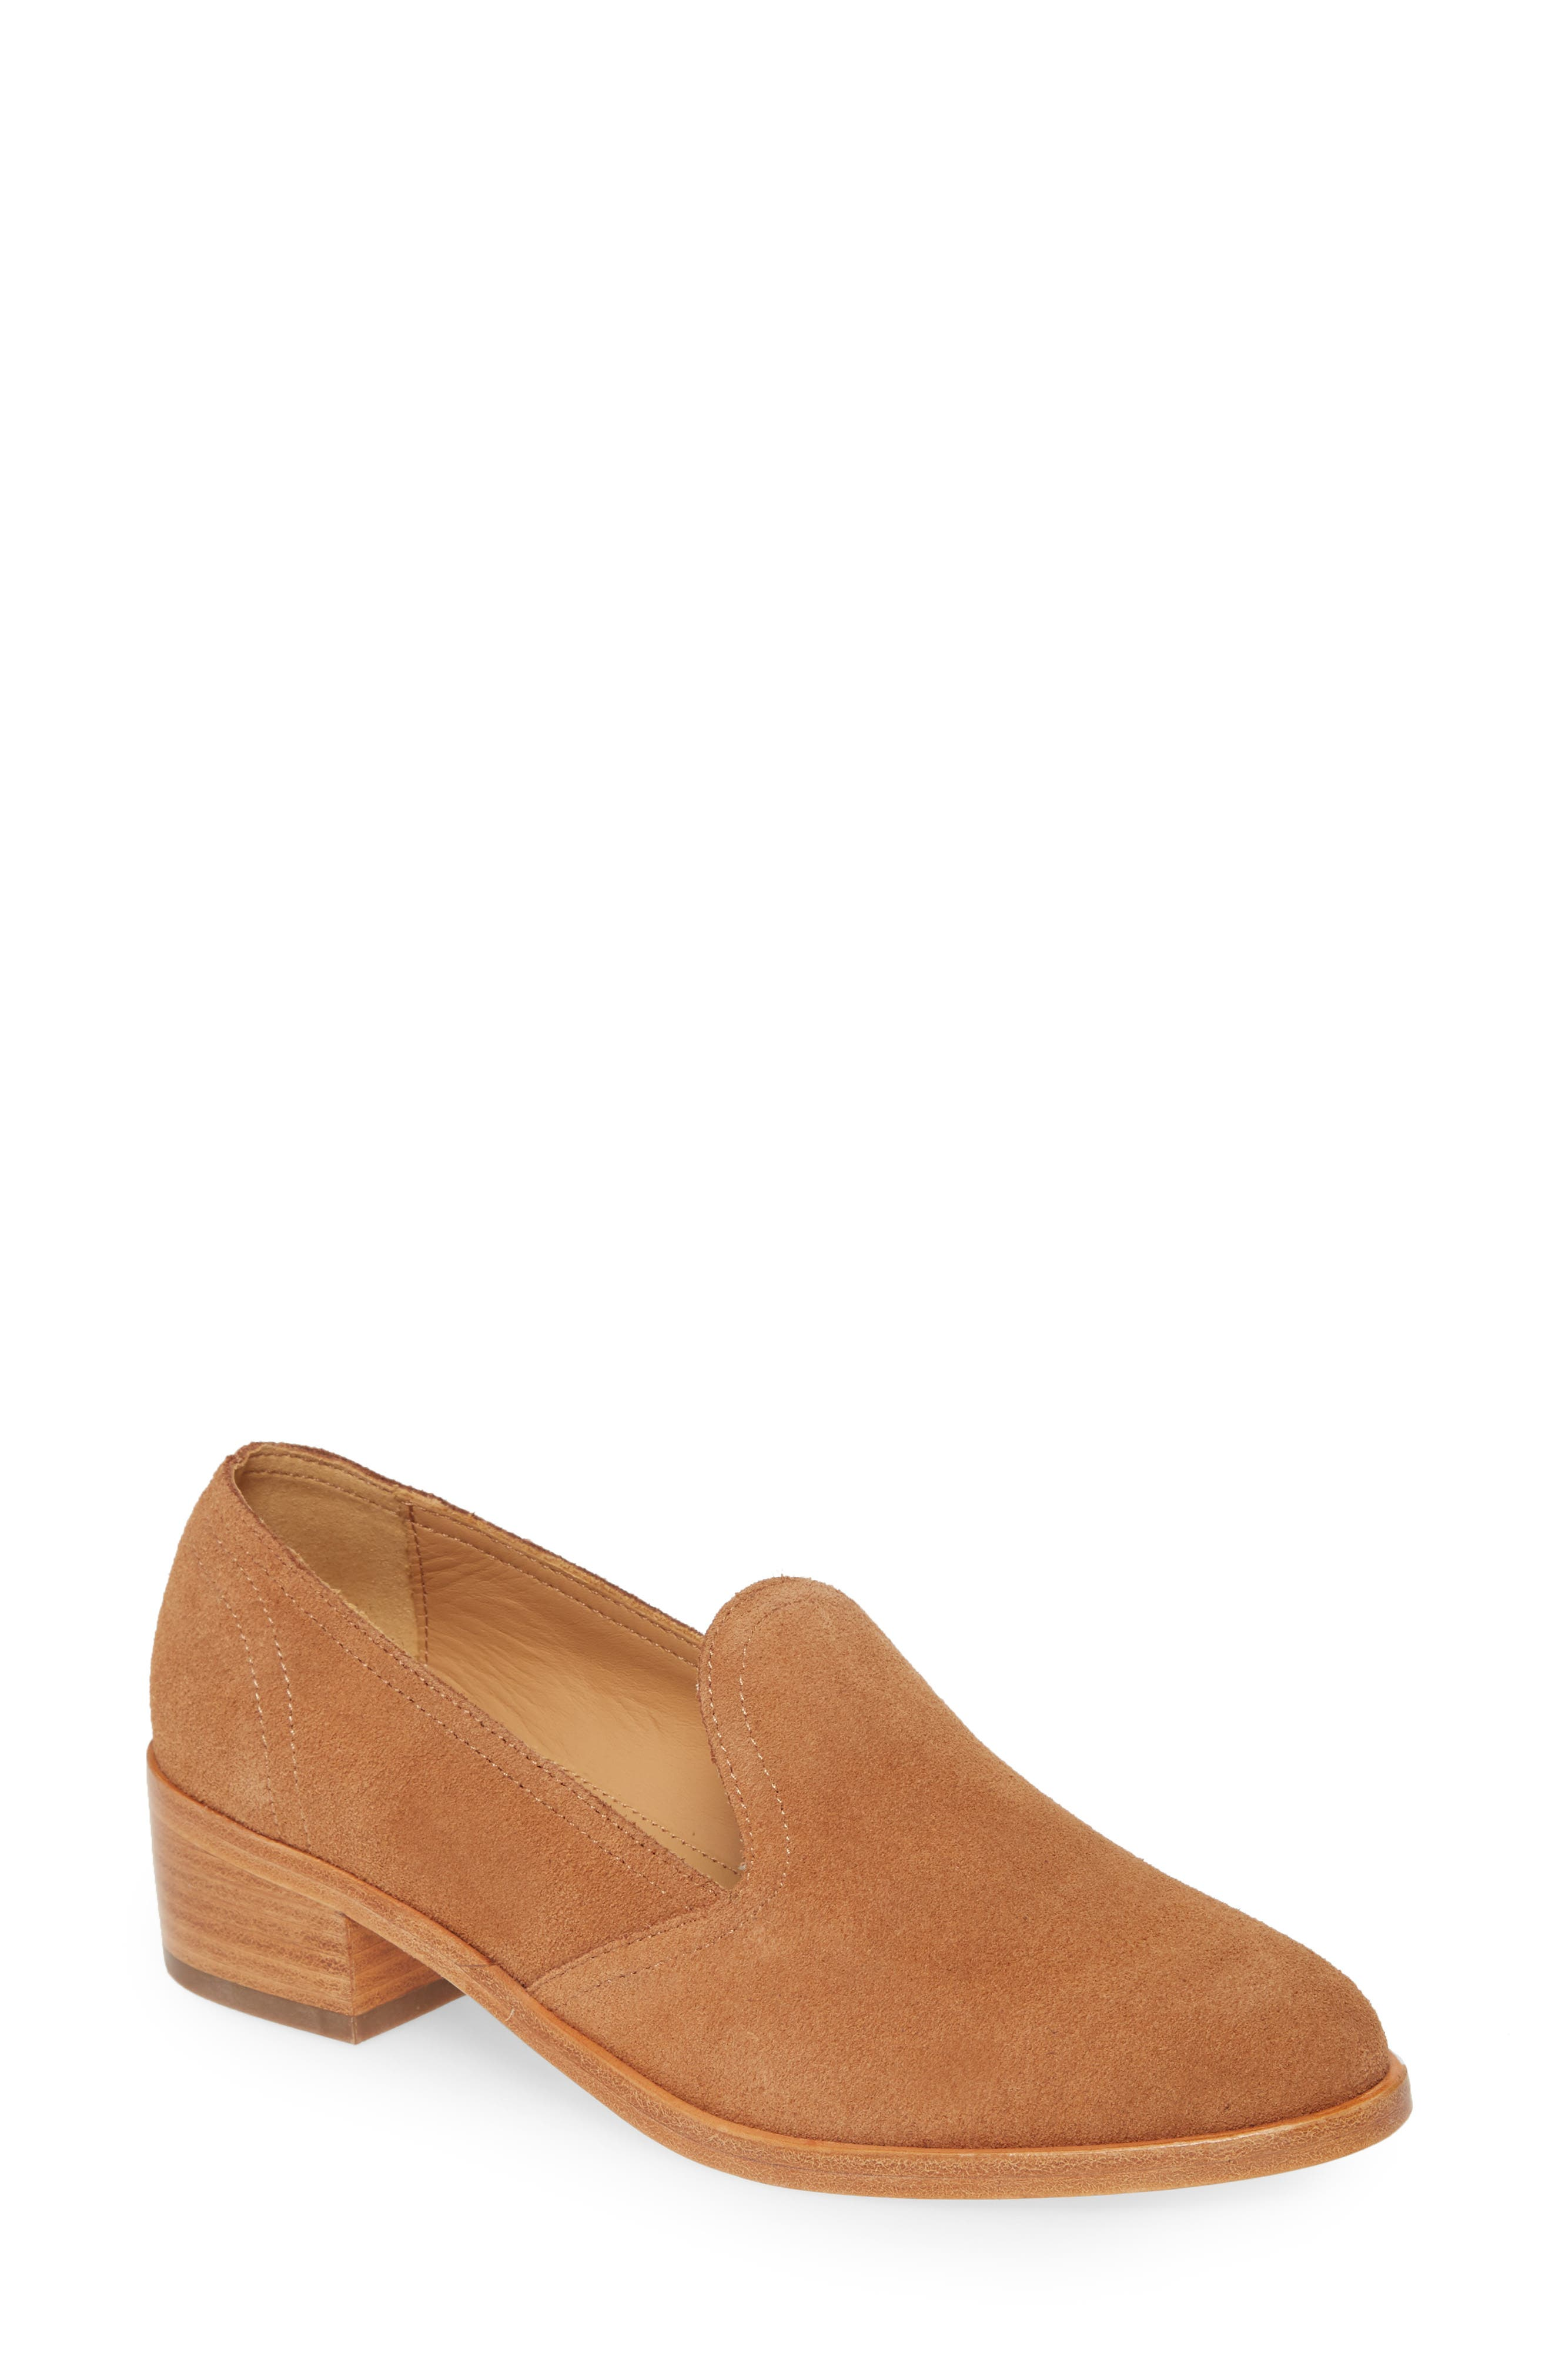 A block heel adds just-right lift to a classic loafer that\\\'s ideal for the office and beyond. Style Name: Soludos Sophia Loafer (Women). Style Number: 5947305. Available in stores.